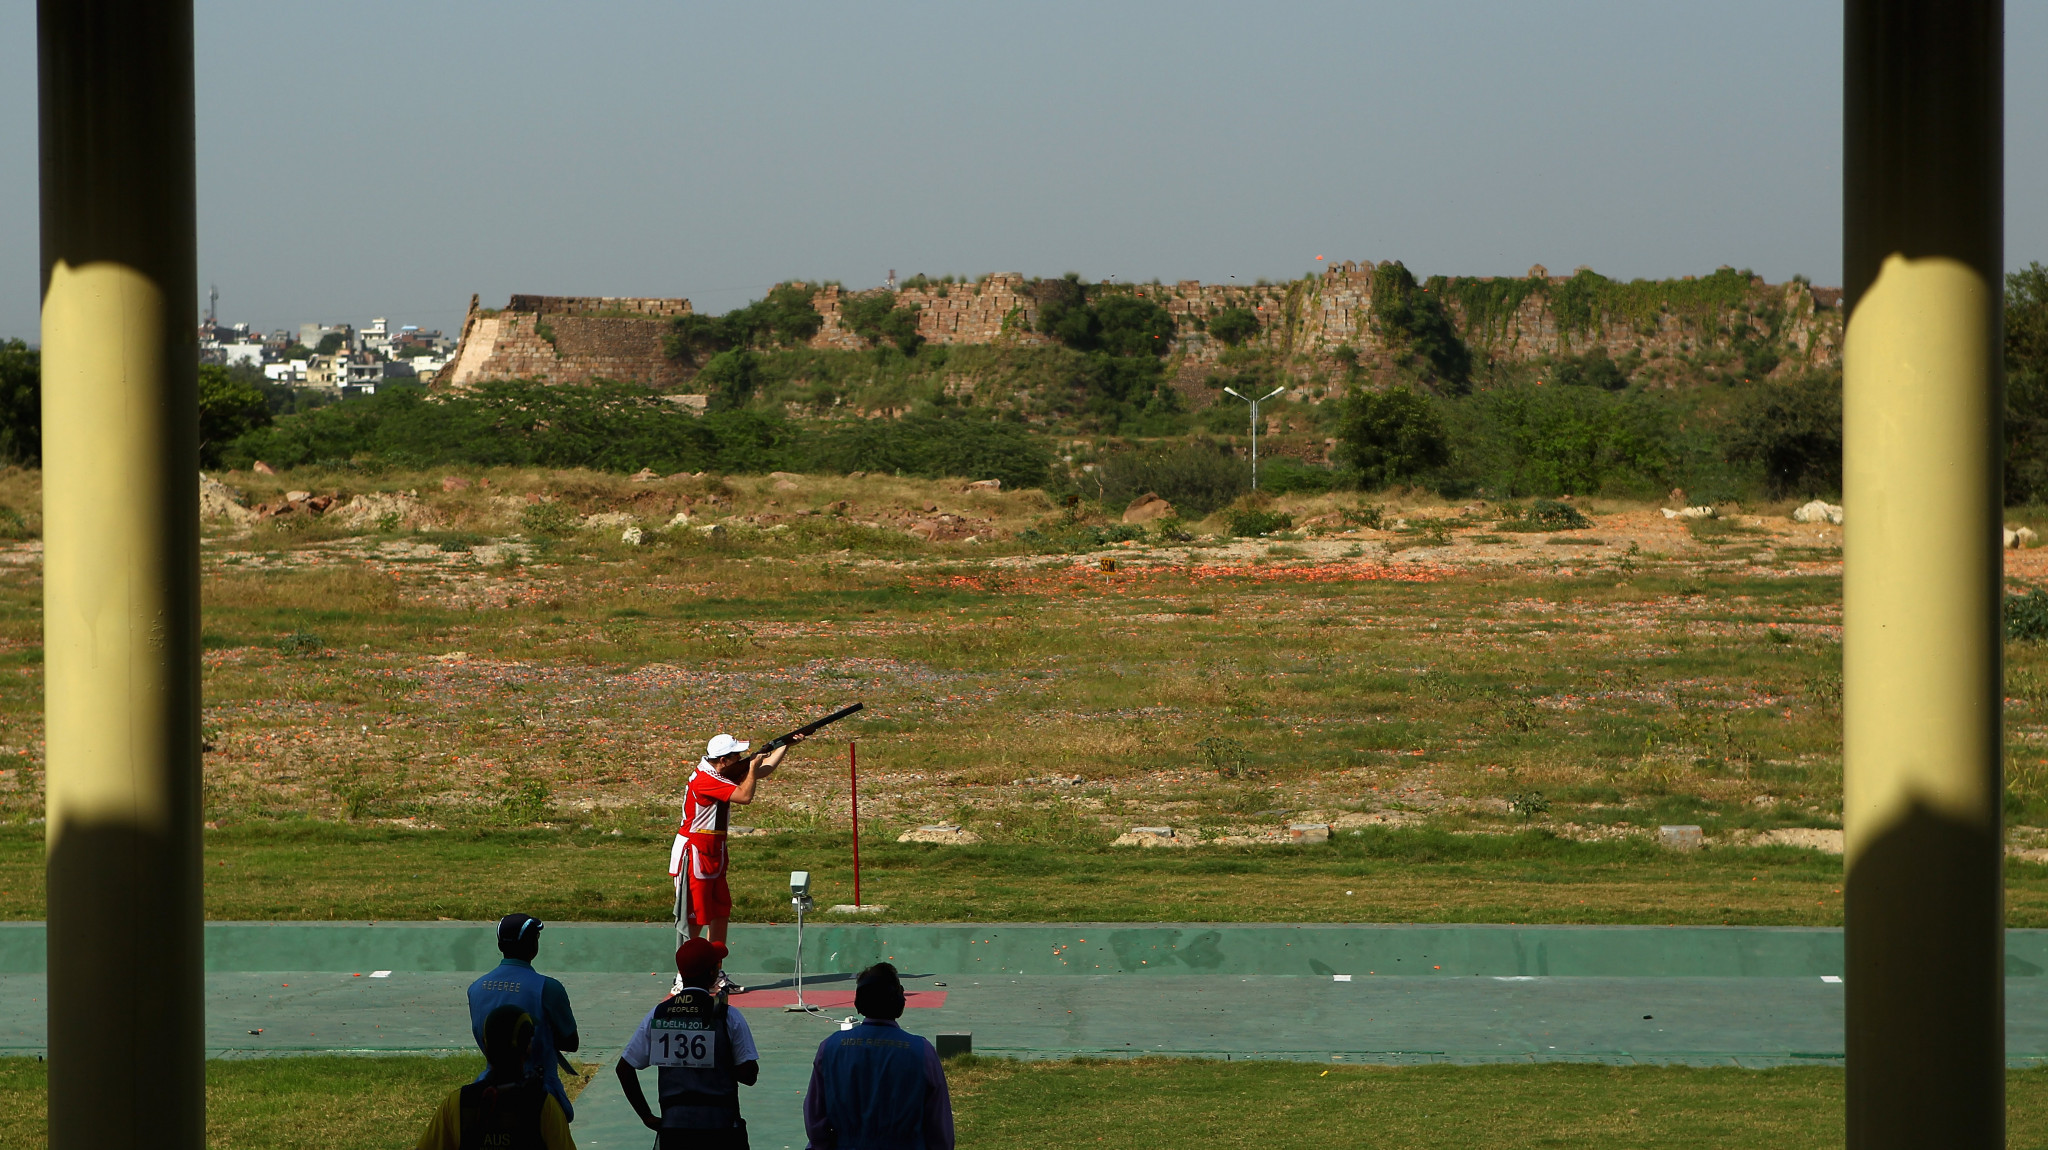 The Dr Karni Singh Shooting Range hosted shooting at the 2010 Commonwealth Games in New Delhi, with India topping the shooting medal table ©Getty Images